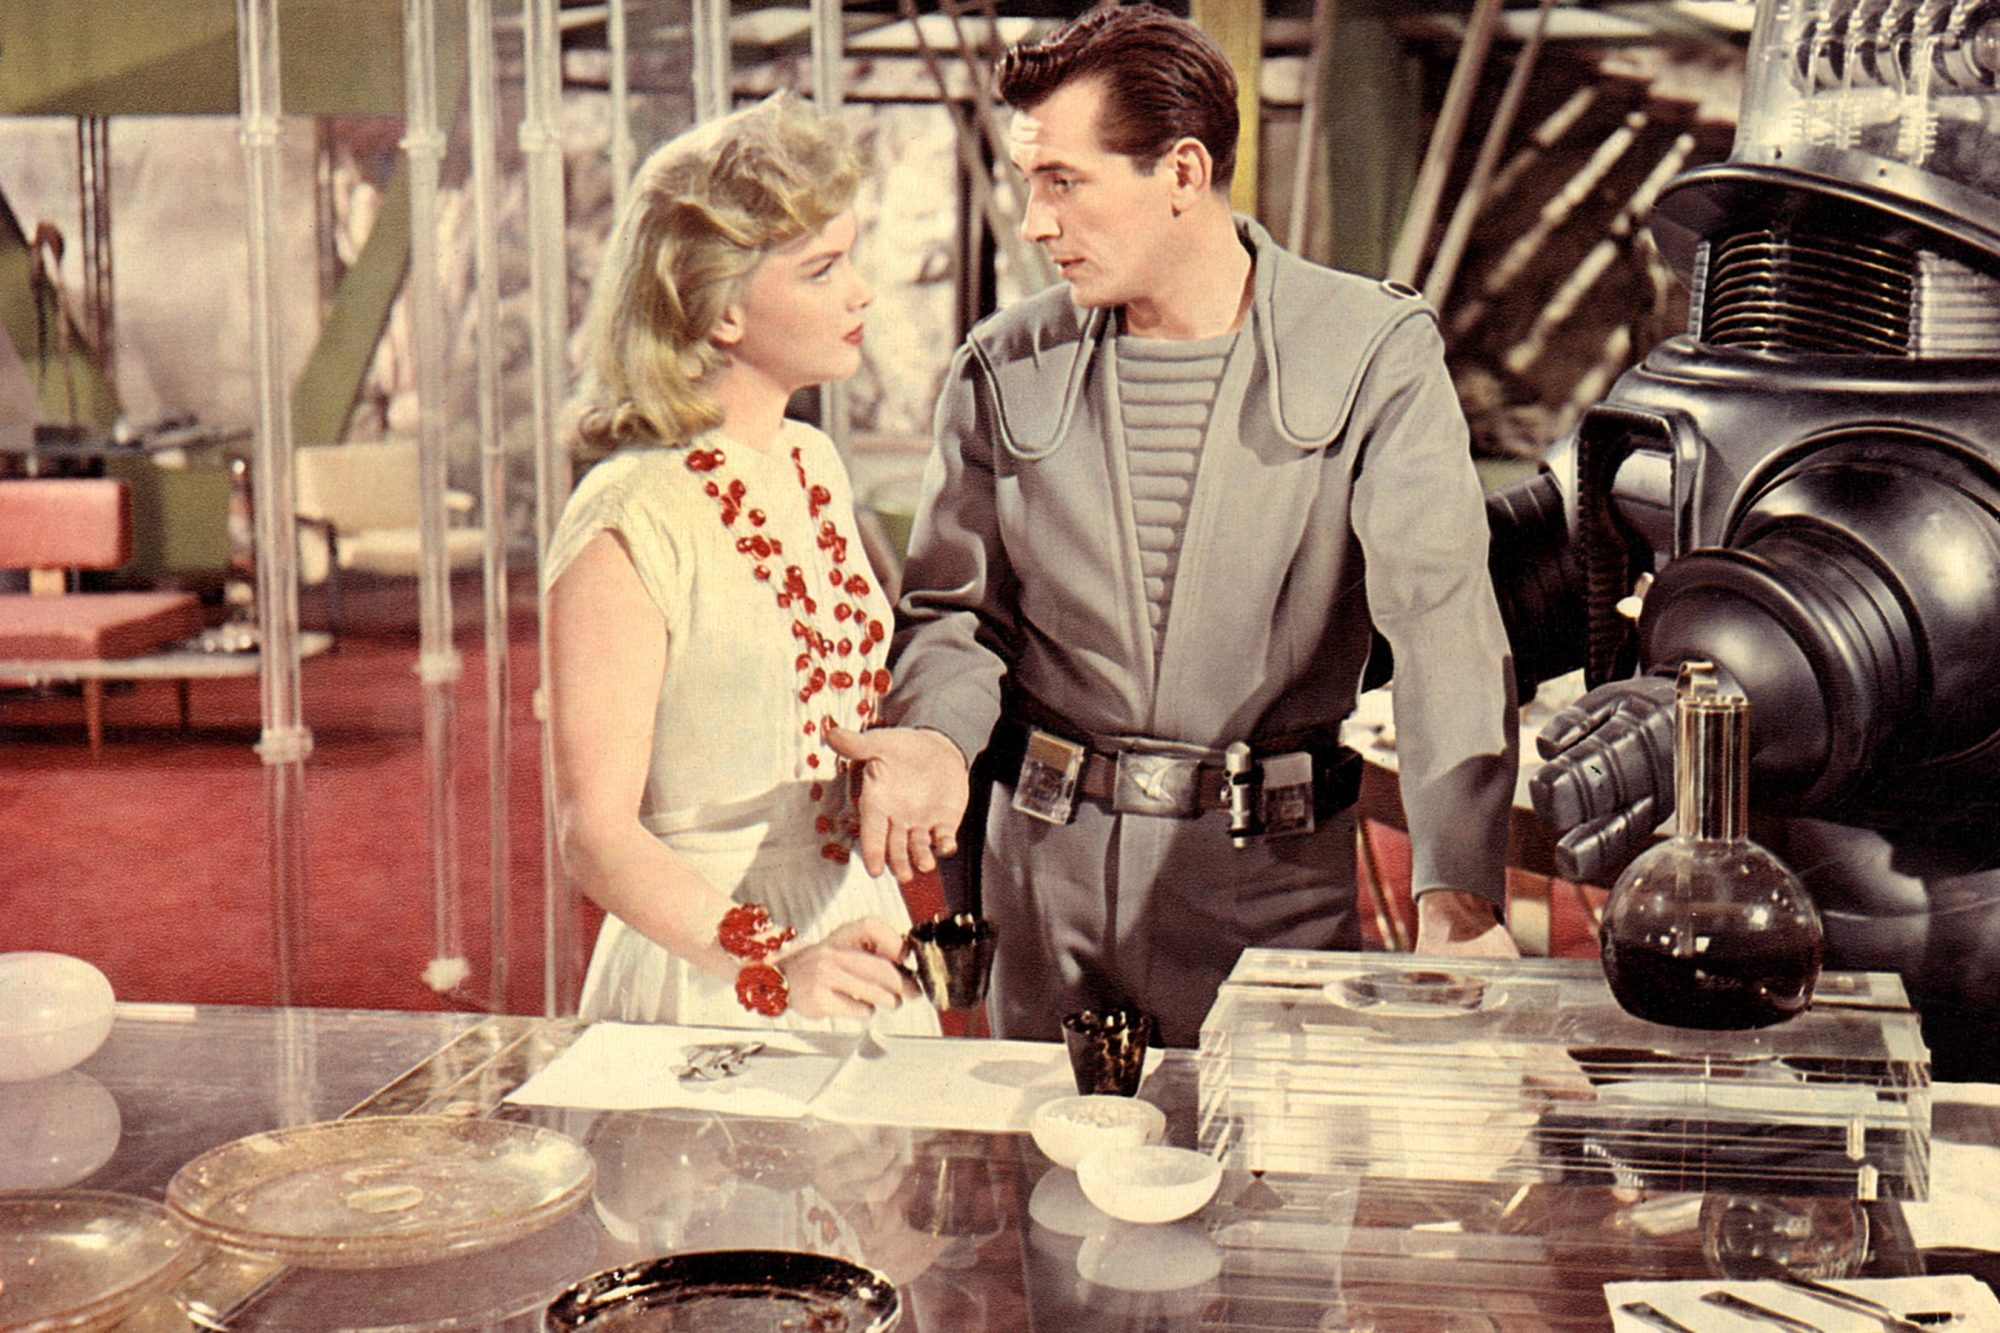 FORBIDDEN PLANET, Anne Francis, Jack Kelly, Robby the Robot, 1956.